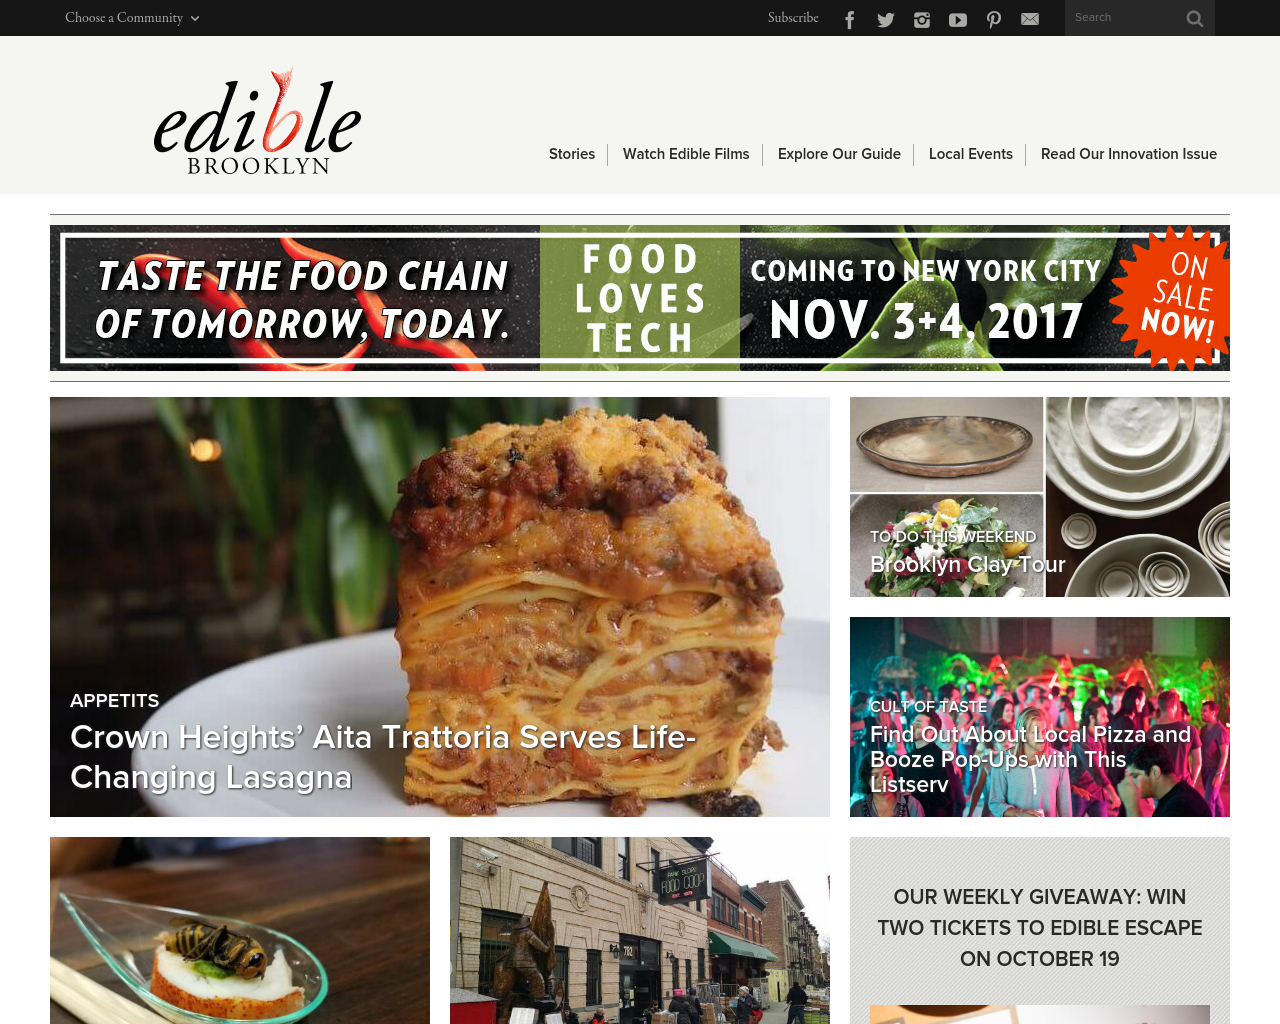 Edible-Brooklyn-Advertising-Reviews-Pricing